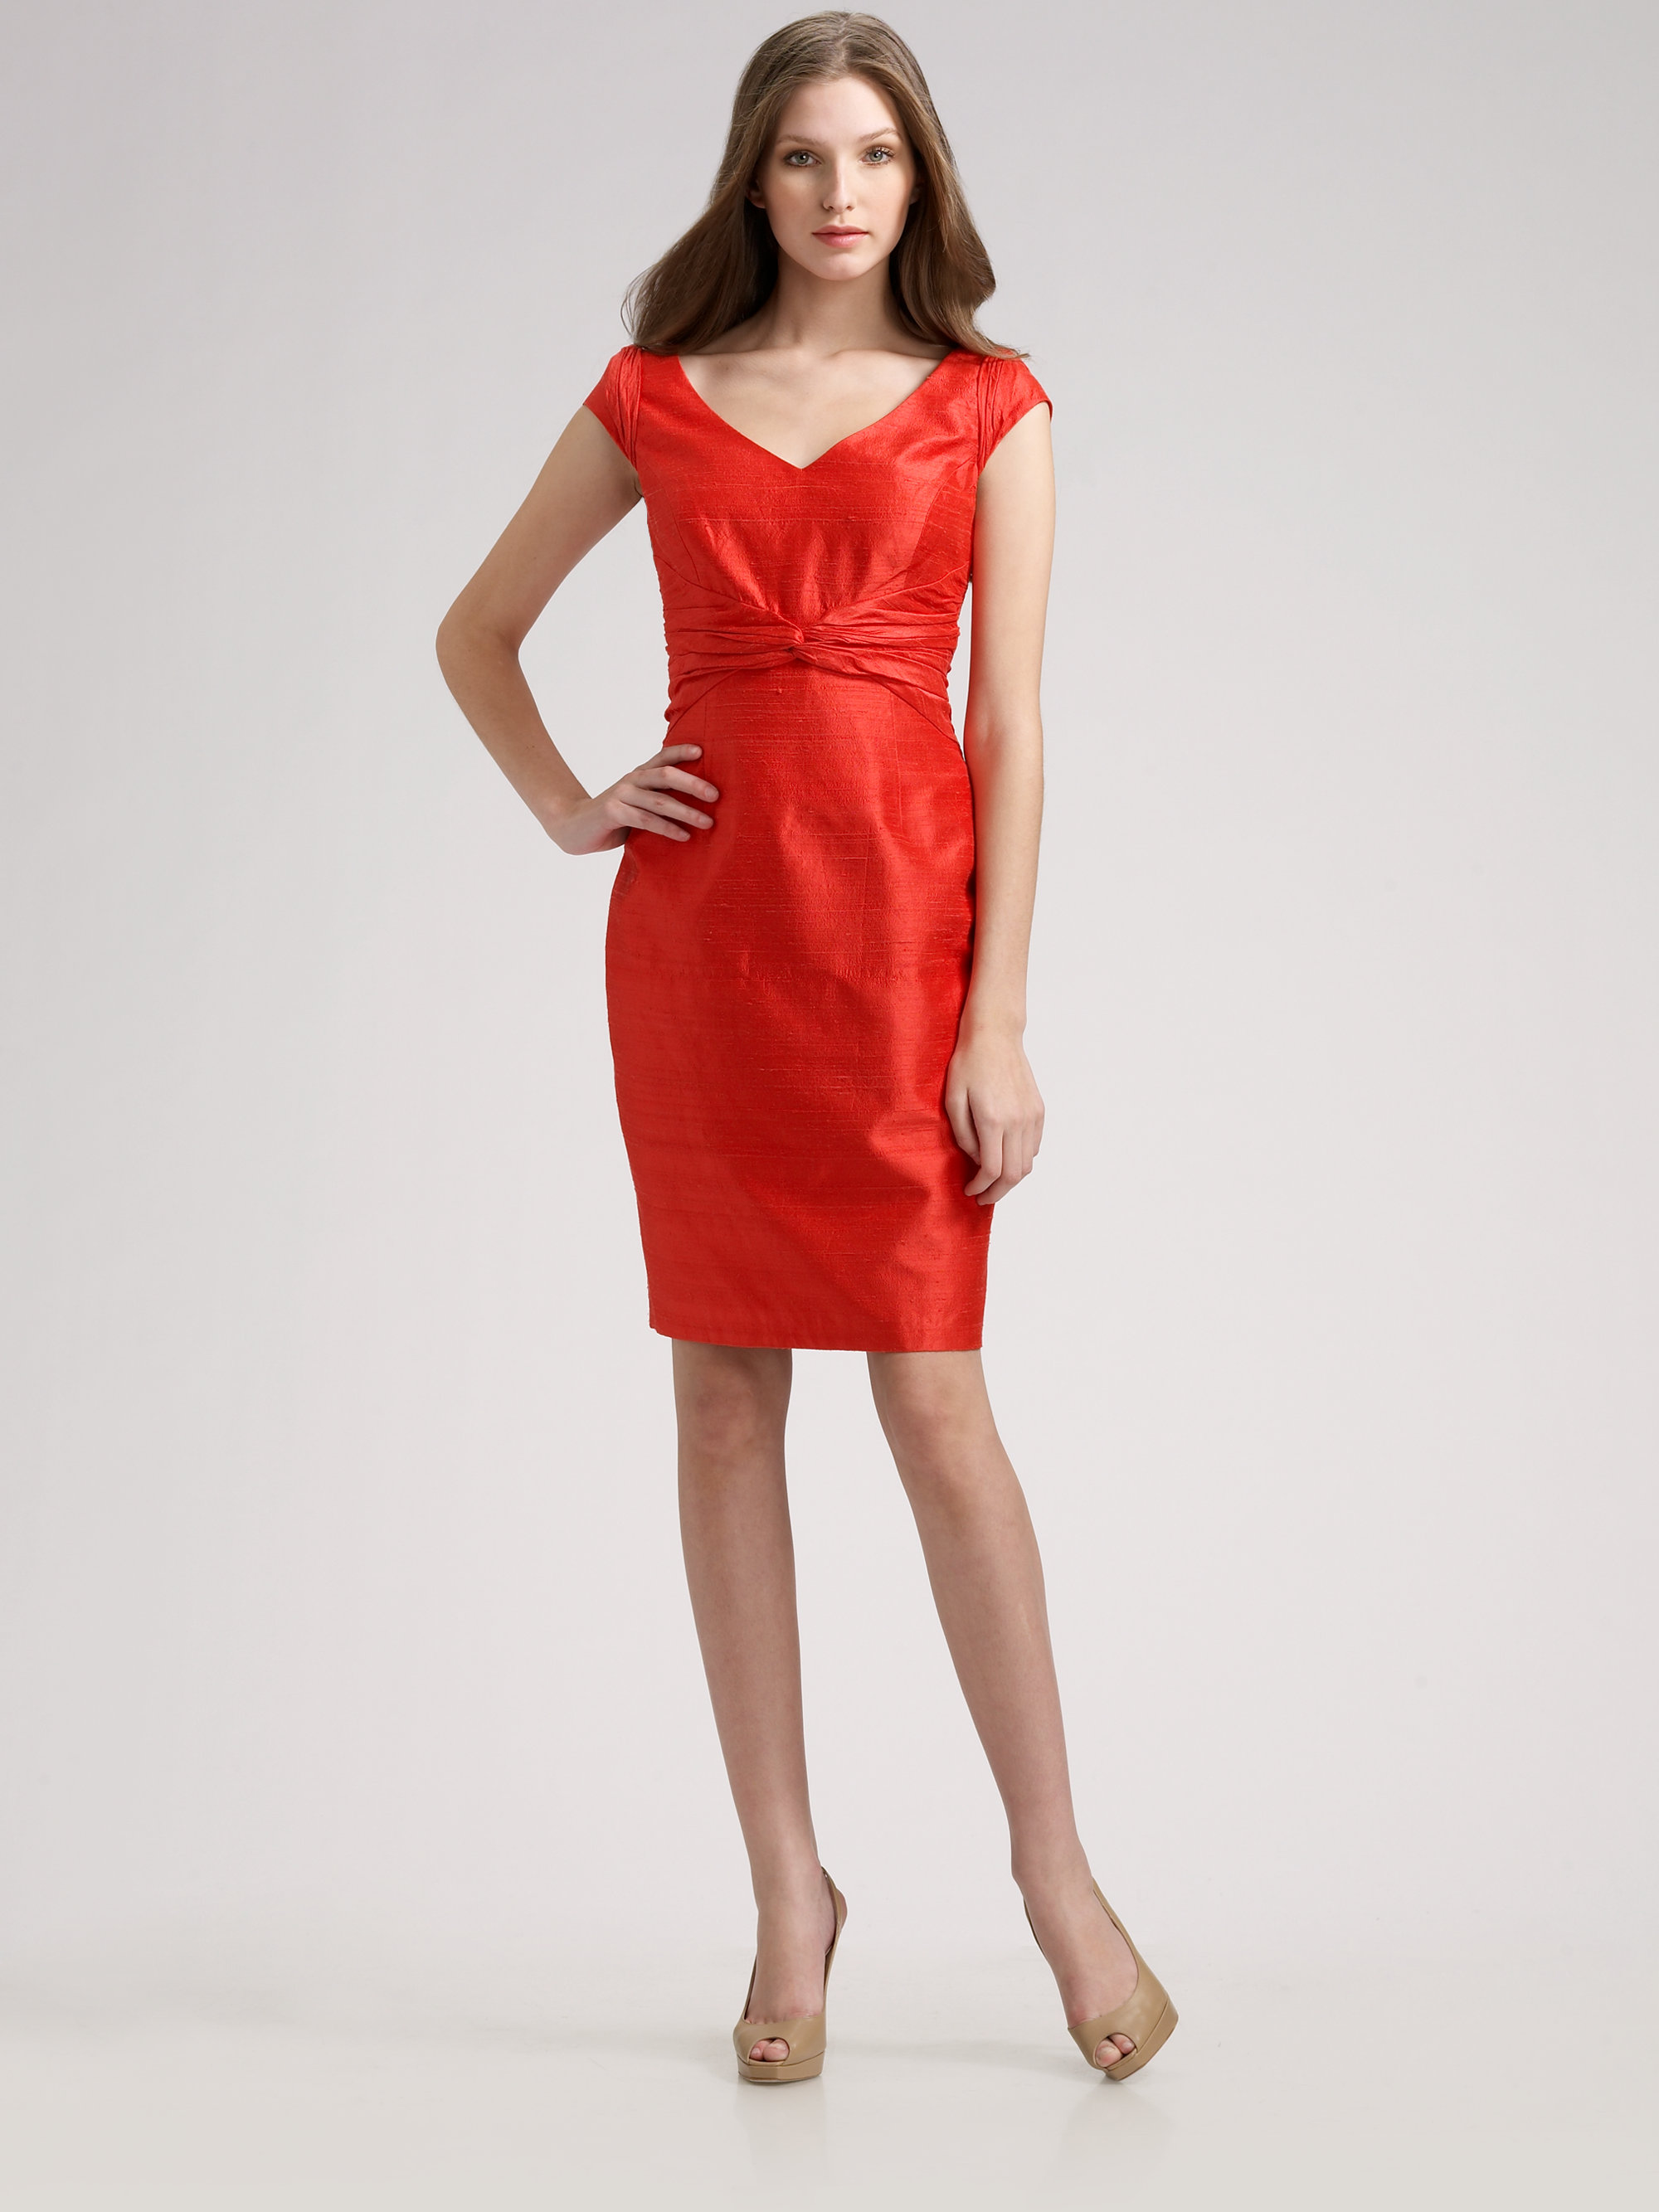 Lyst - Kay Unger Silk Dupioni Dress in Red